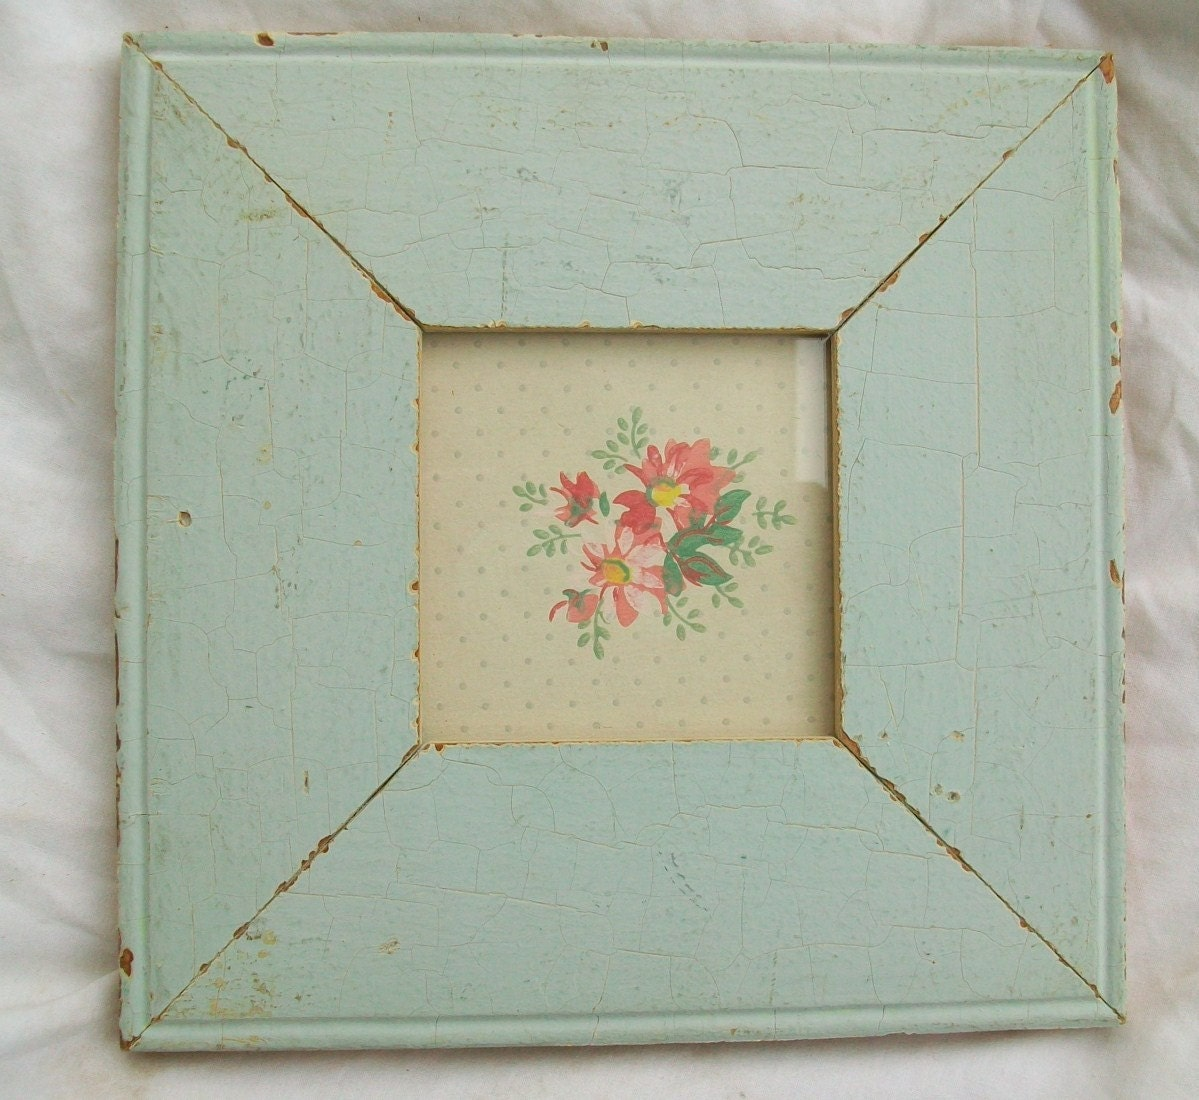 Old New York Architectural Salvaged Wood Shabby Picture Frame Reclaimed Chic S7700